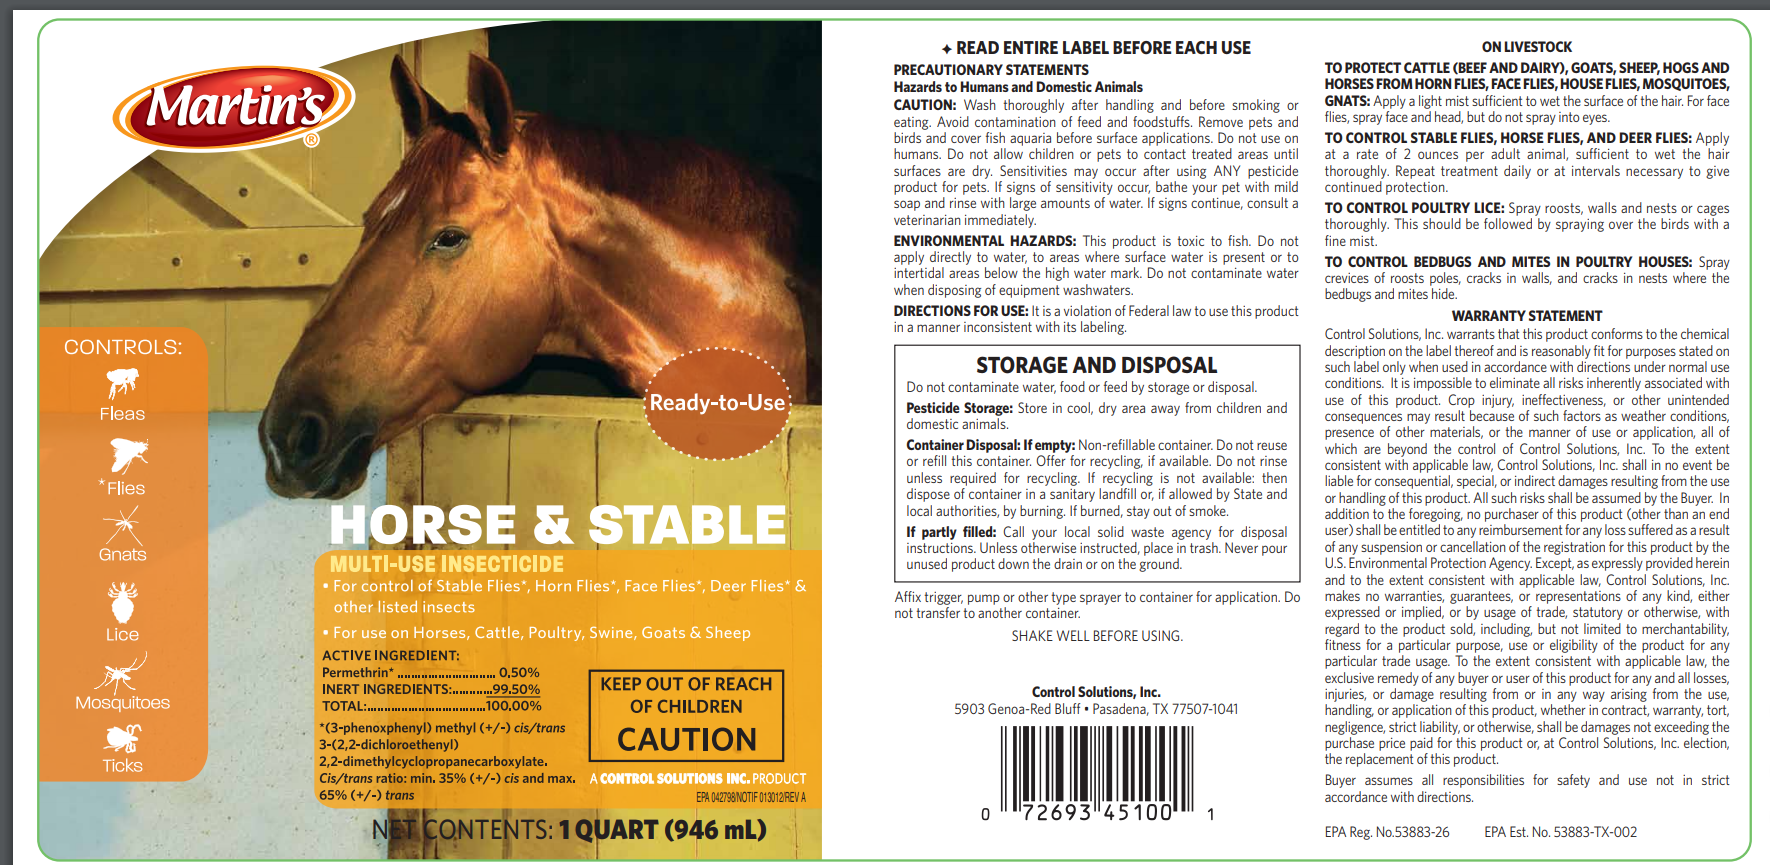 martins stable label_1.png